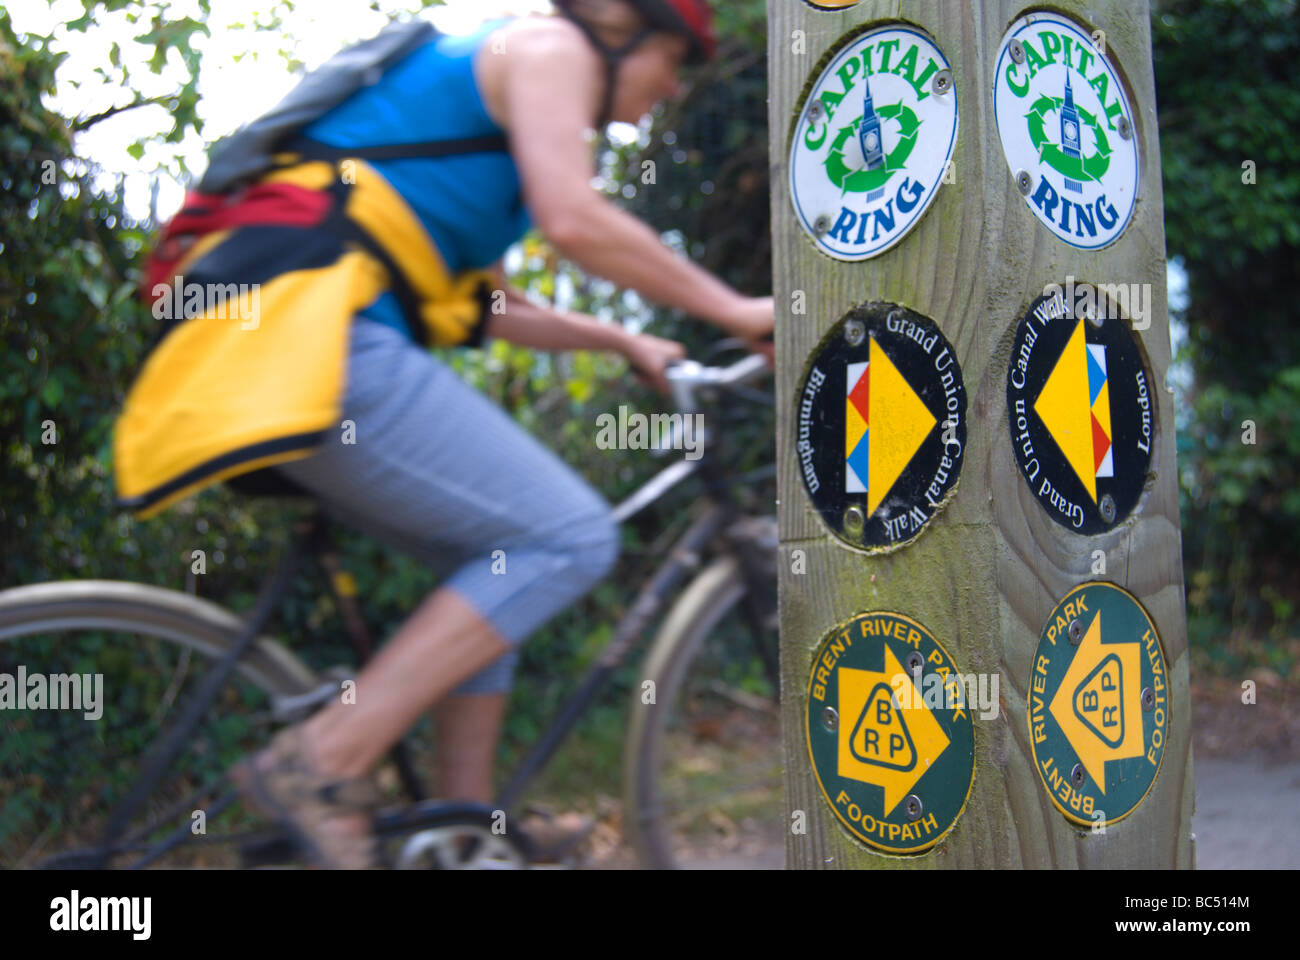 female cyclist passing a signpost showing routes to the grand union canal walk the capital ring, and brent river - Stock Image